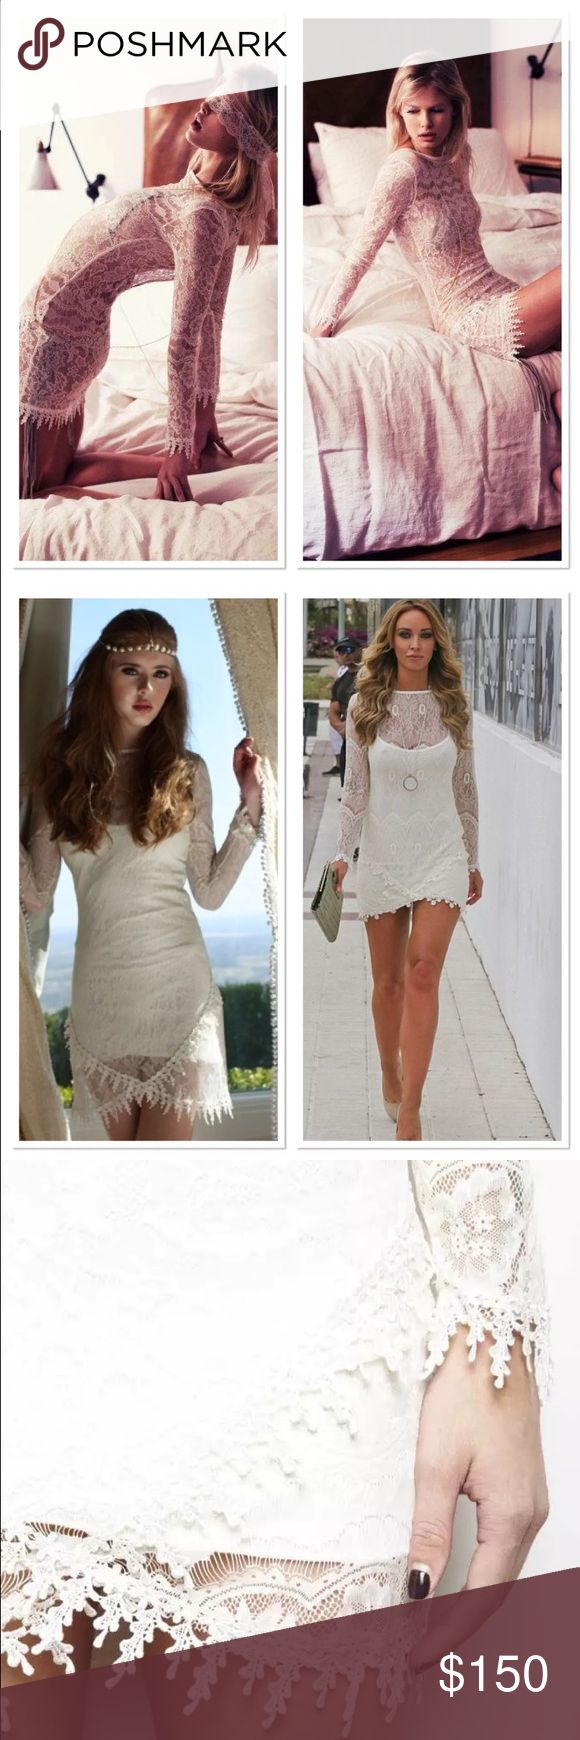 For Love and Lemons Scarlet Dress The most beautifully crafted lace mini dress is a stunner from one of FL&L's original collections.   Long sleeves and crochet trim at the cuffs and hem.   Comes with a detachable cami underneath.   Features a rose trim detail that is present at the bottom of the sleeves and along the hemline.   It is also present at the front of the skirt where it comes all together into a figure flattering V Shape.   Pure perfection. For Love and Lemons Dresses Mini